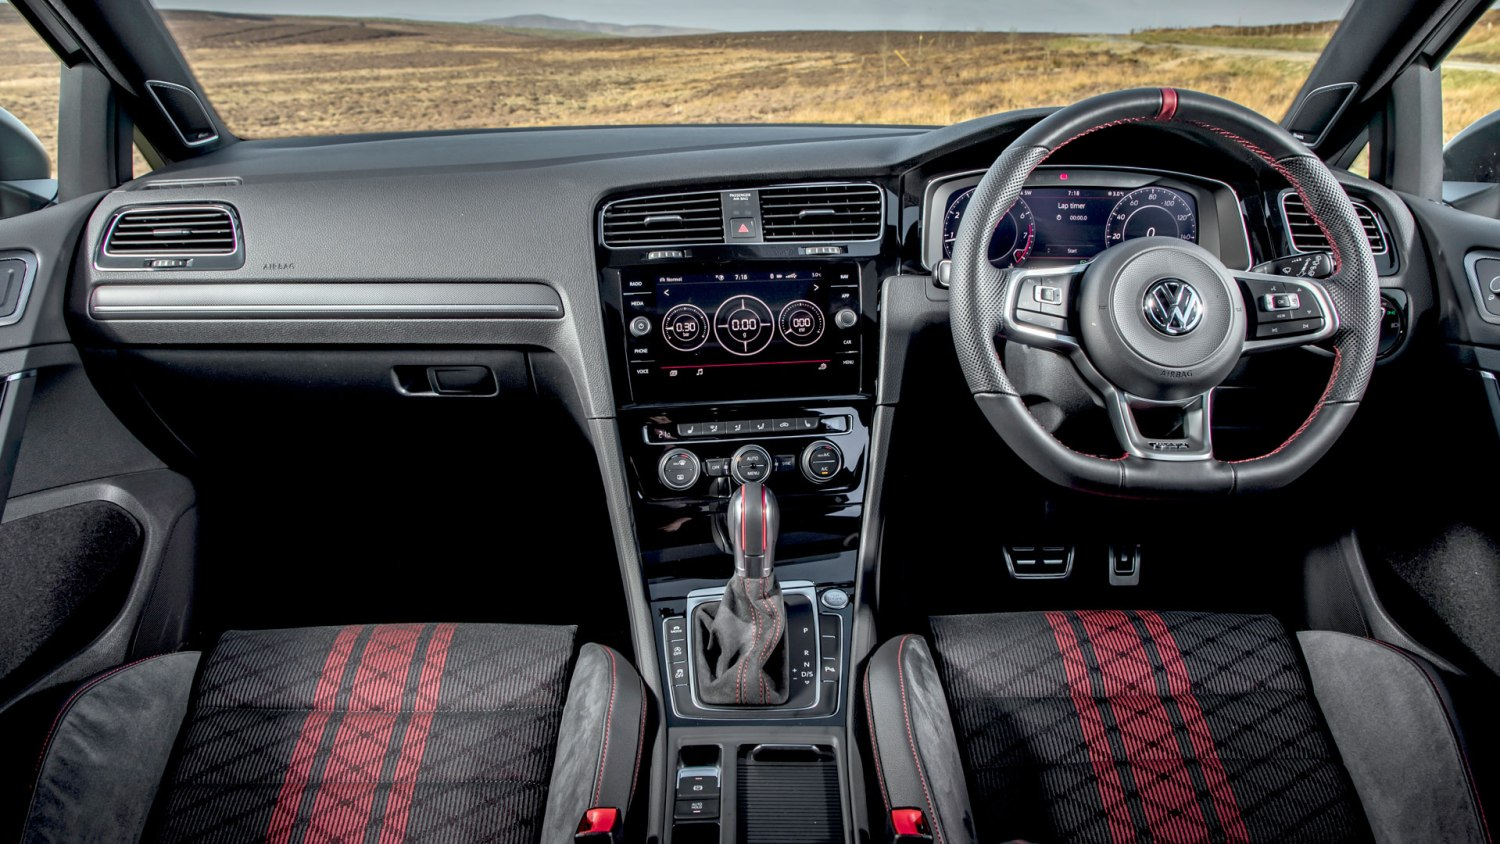 Volkswagen Golf GTI TCR interior